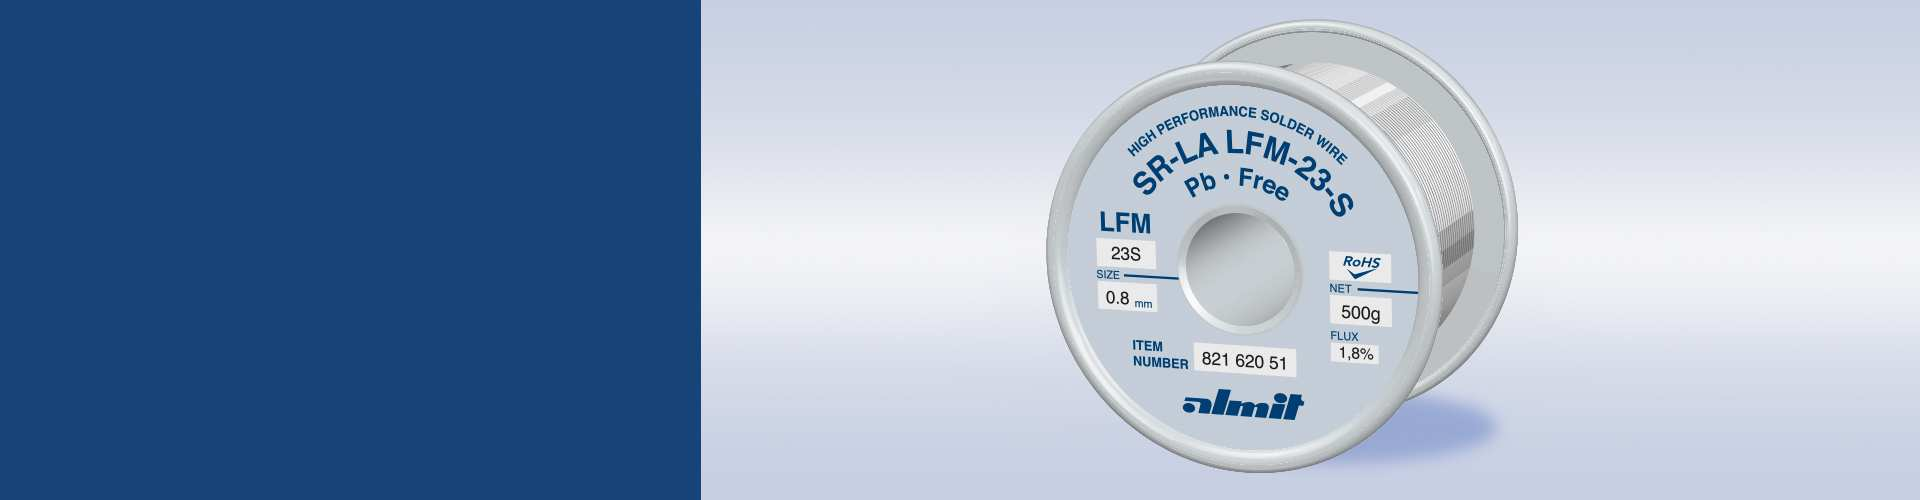 LFM-23 S – intelligent solutions